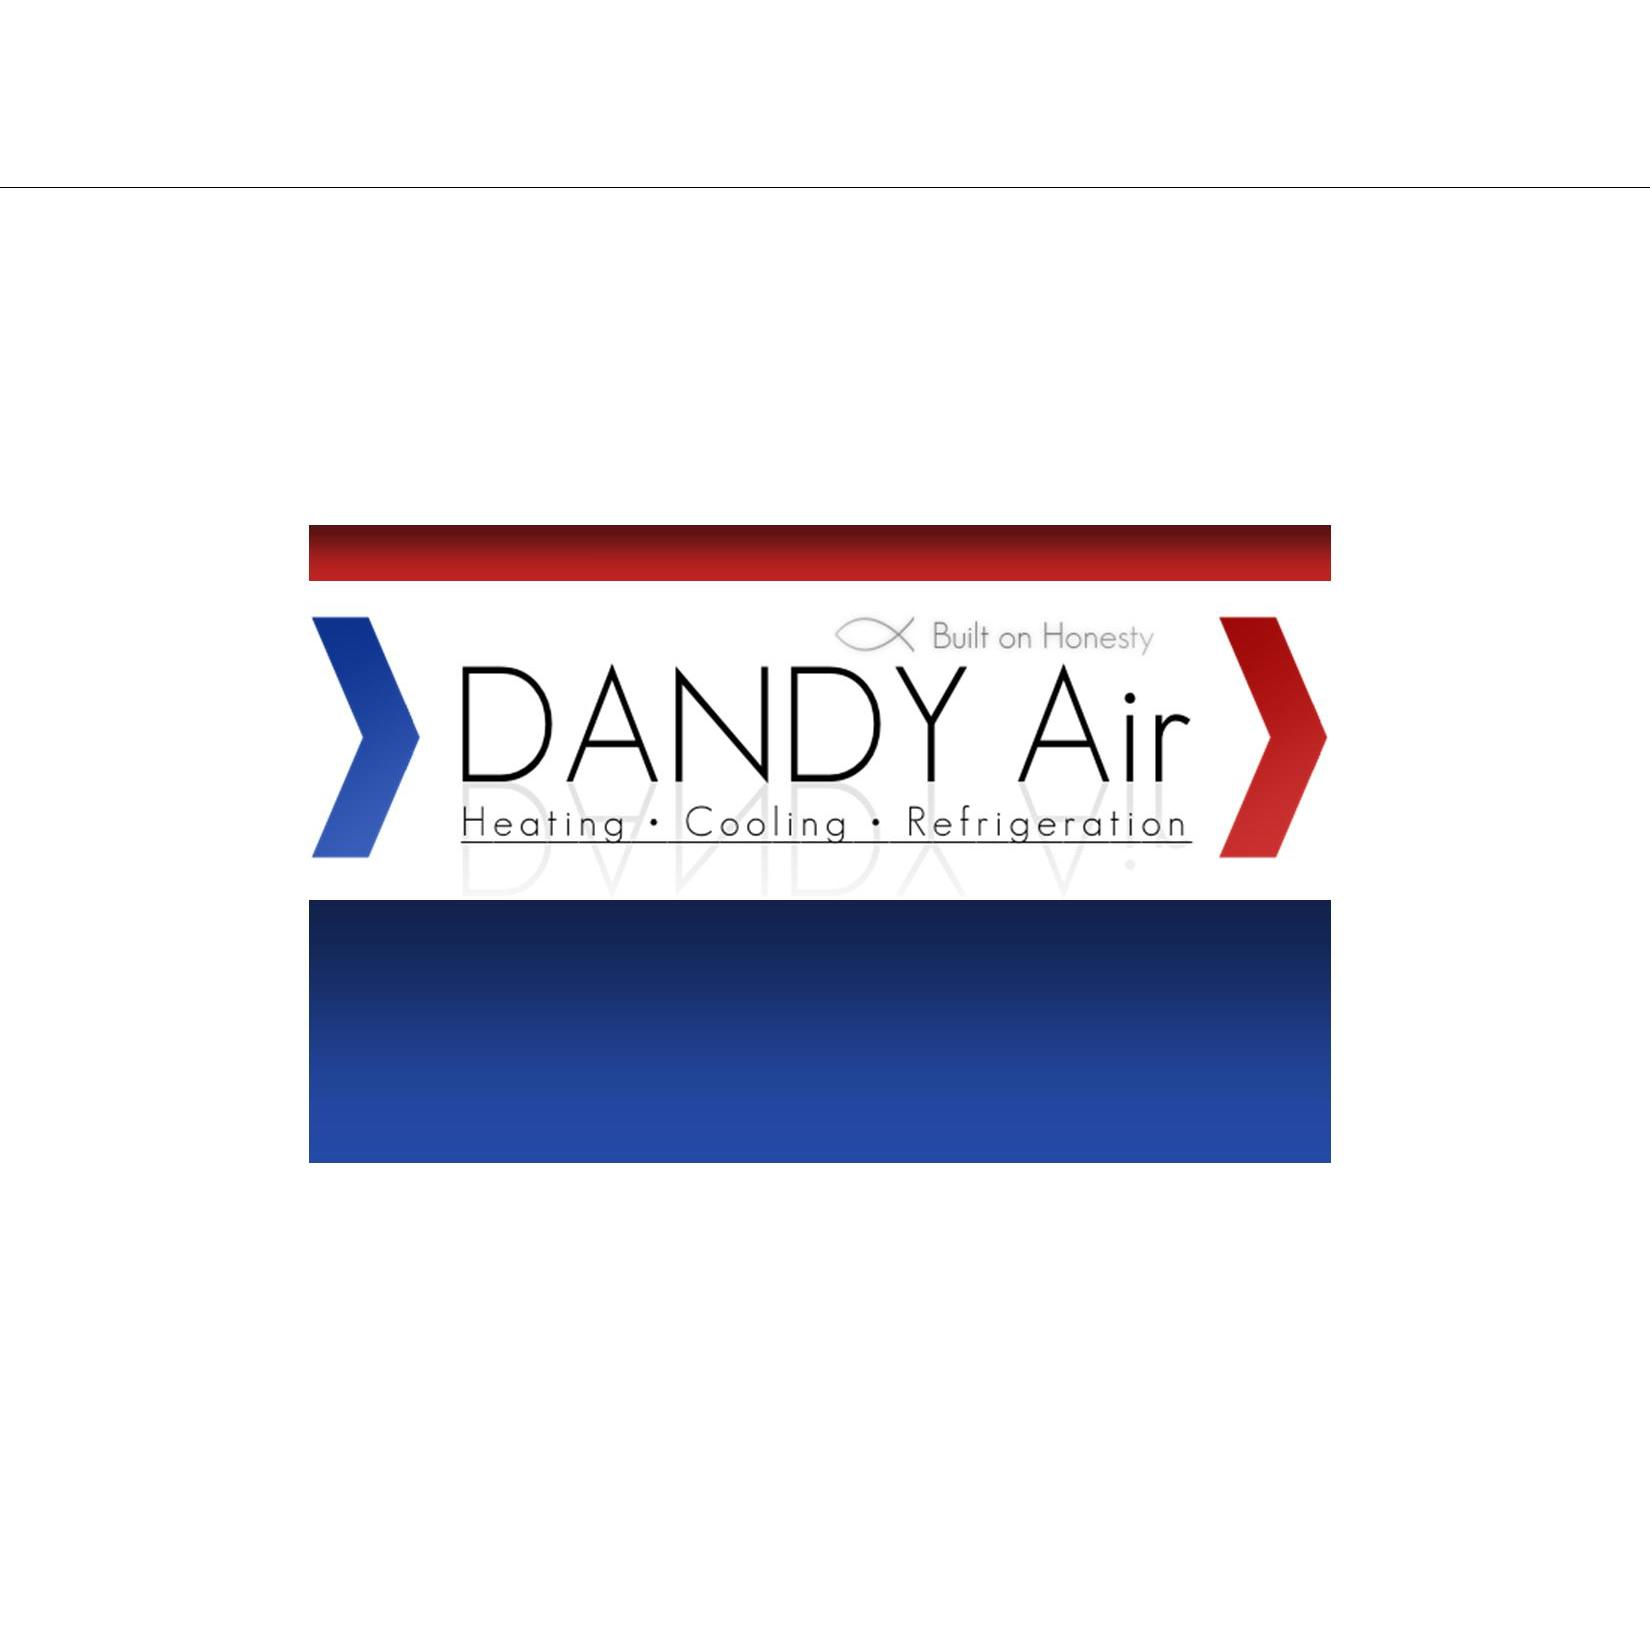 Dandy Air